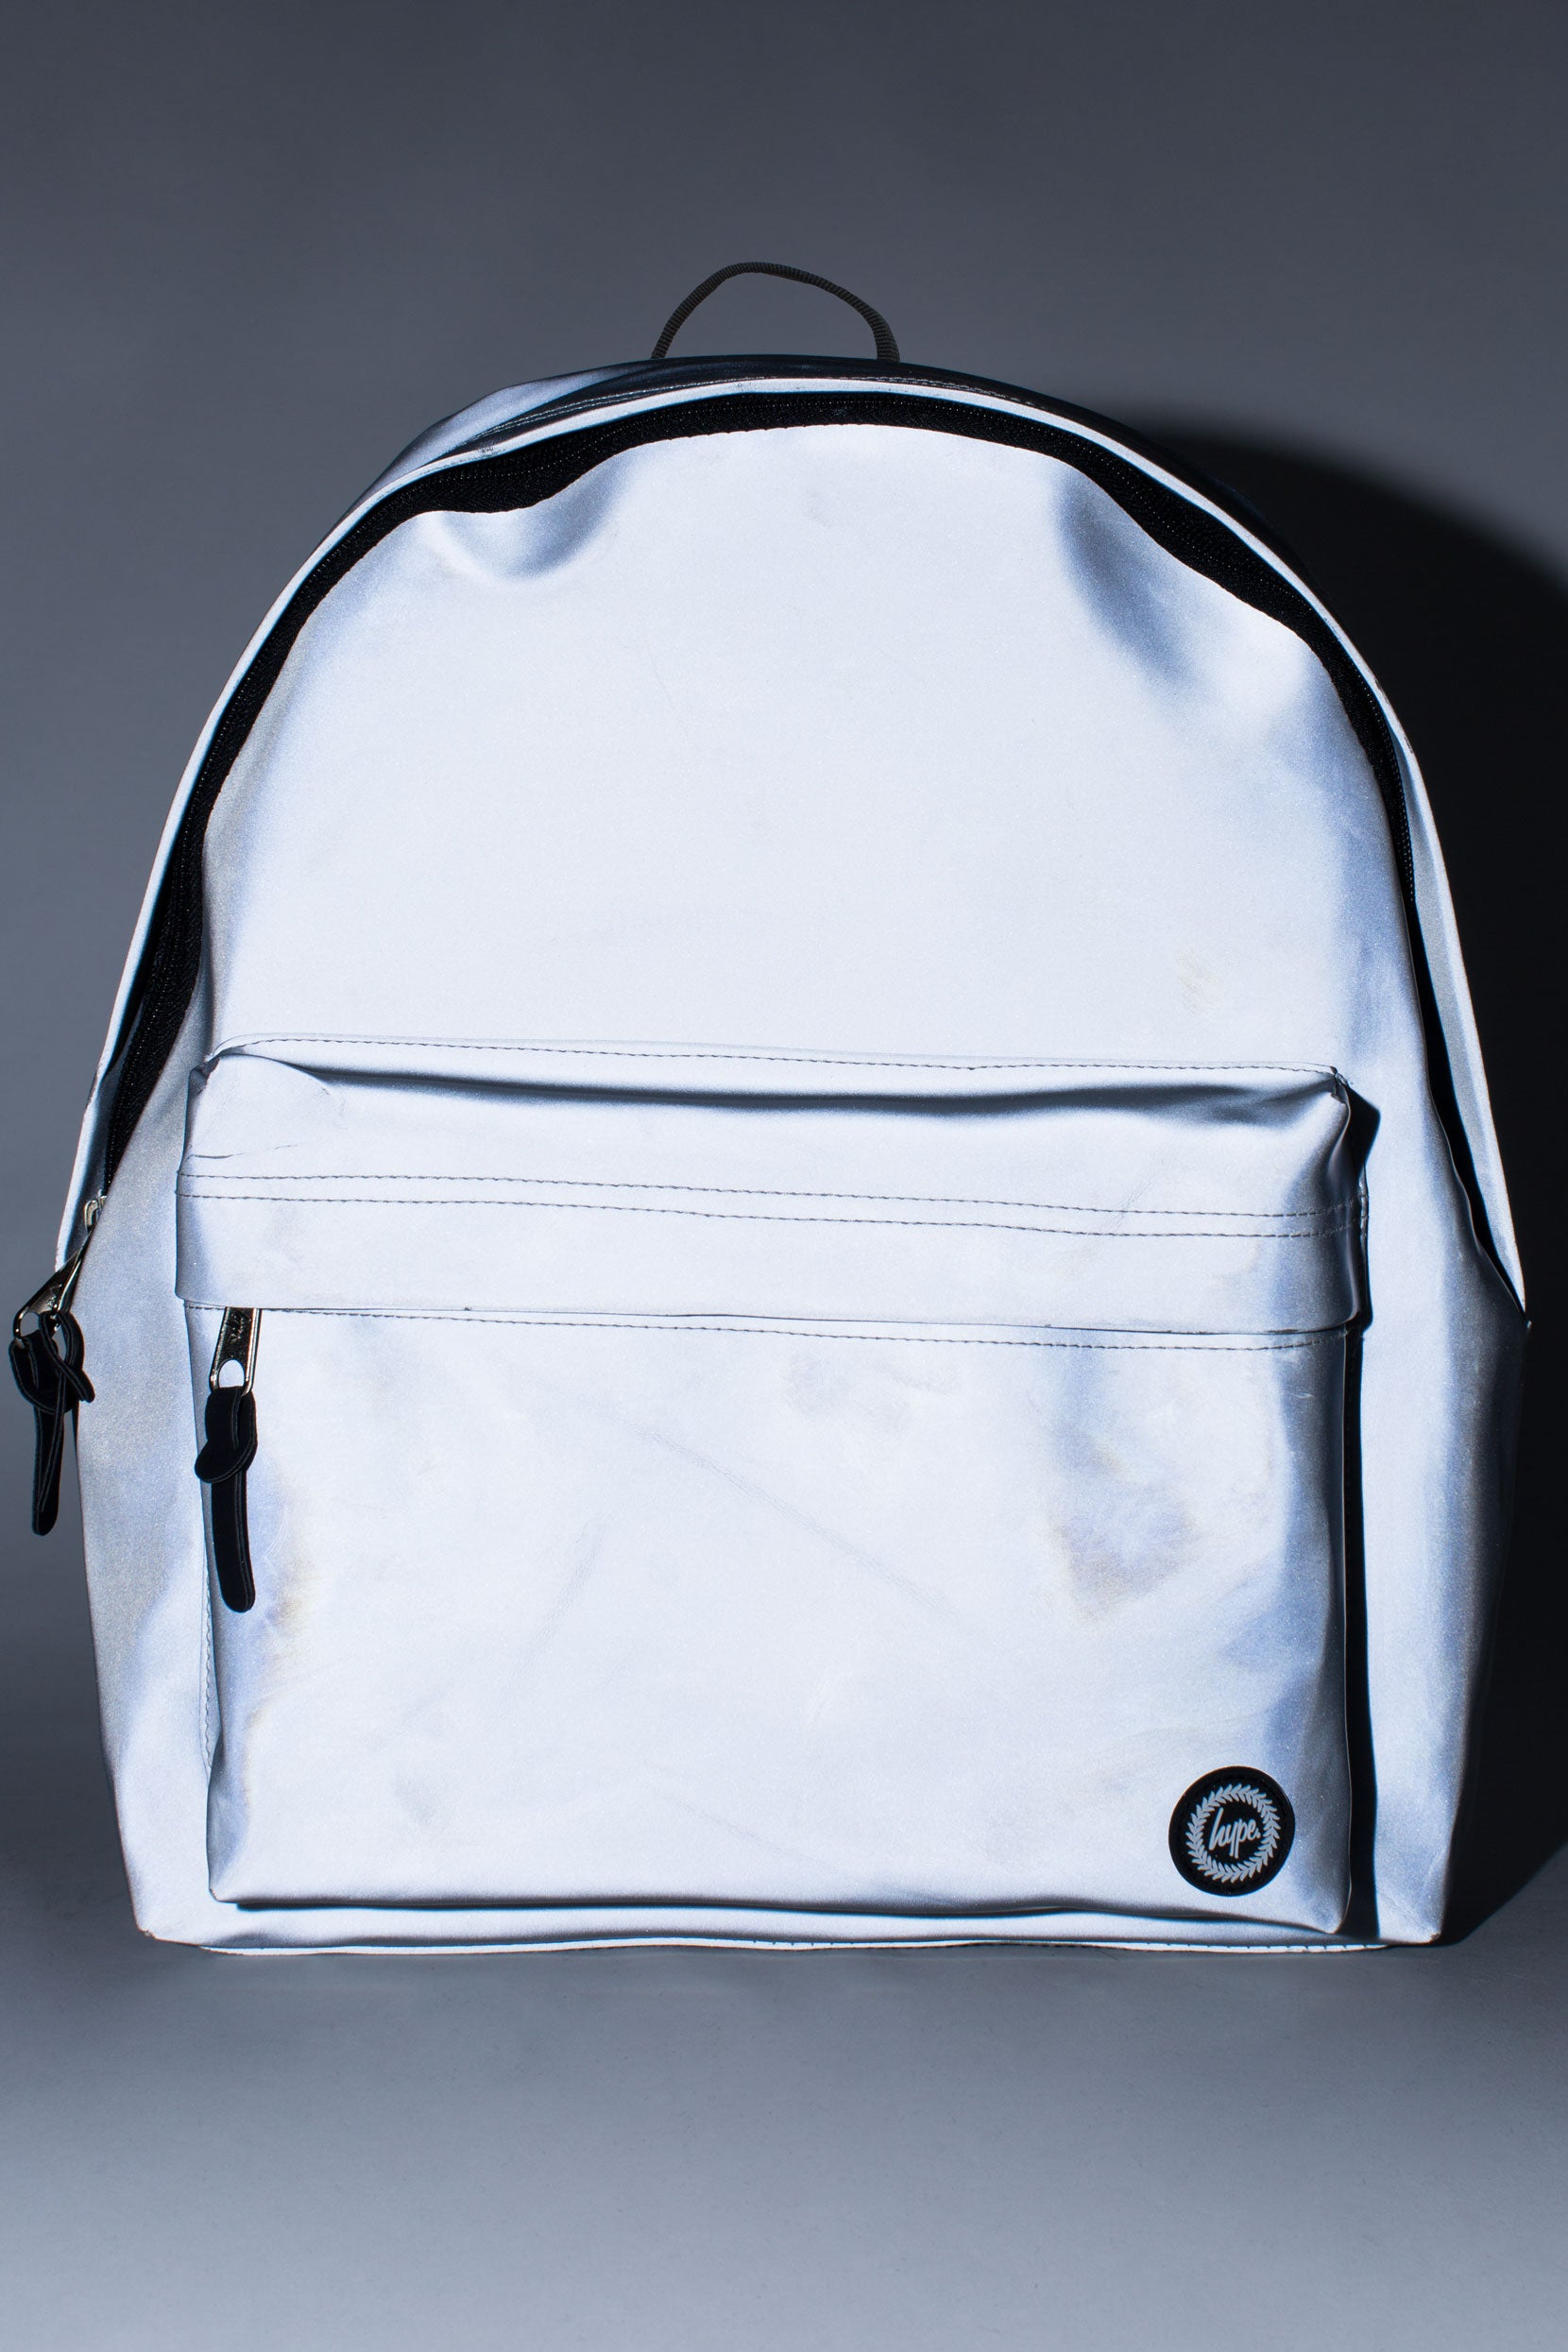 abdb16ee2837 HYPE SILVER STEEL GLOW BACKPACK – JustHype ltd